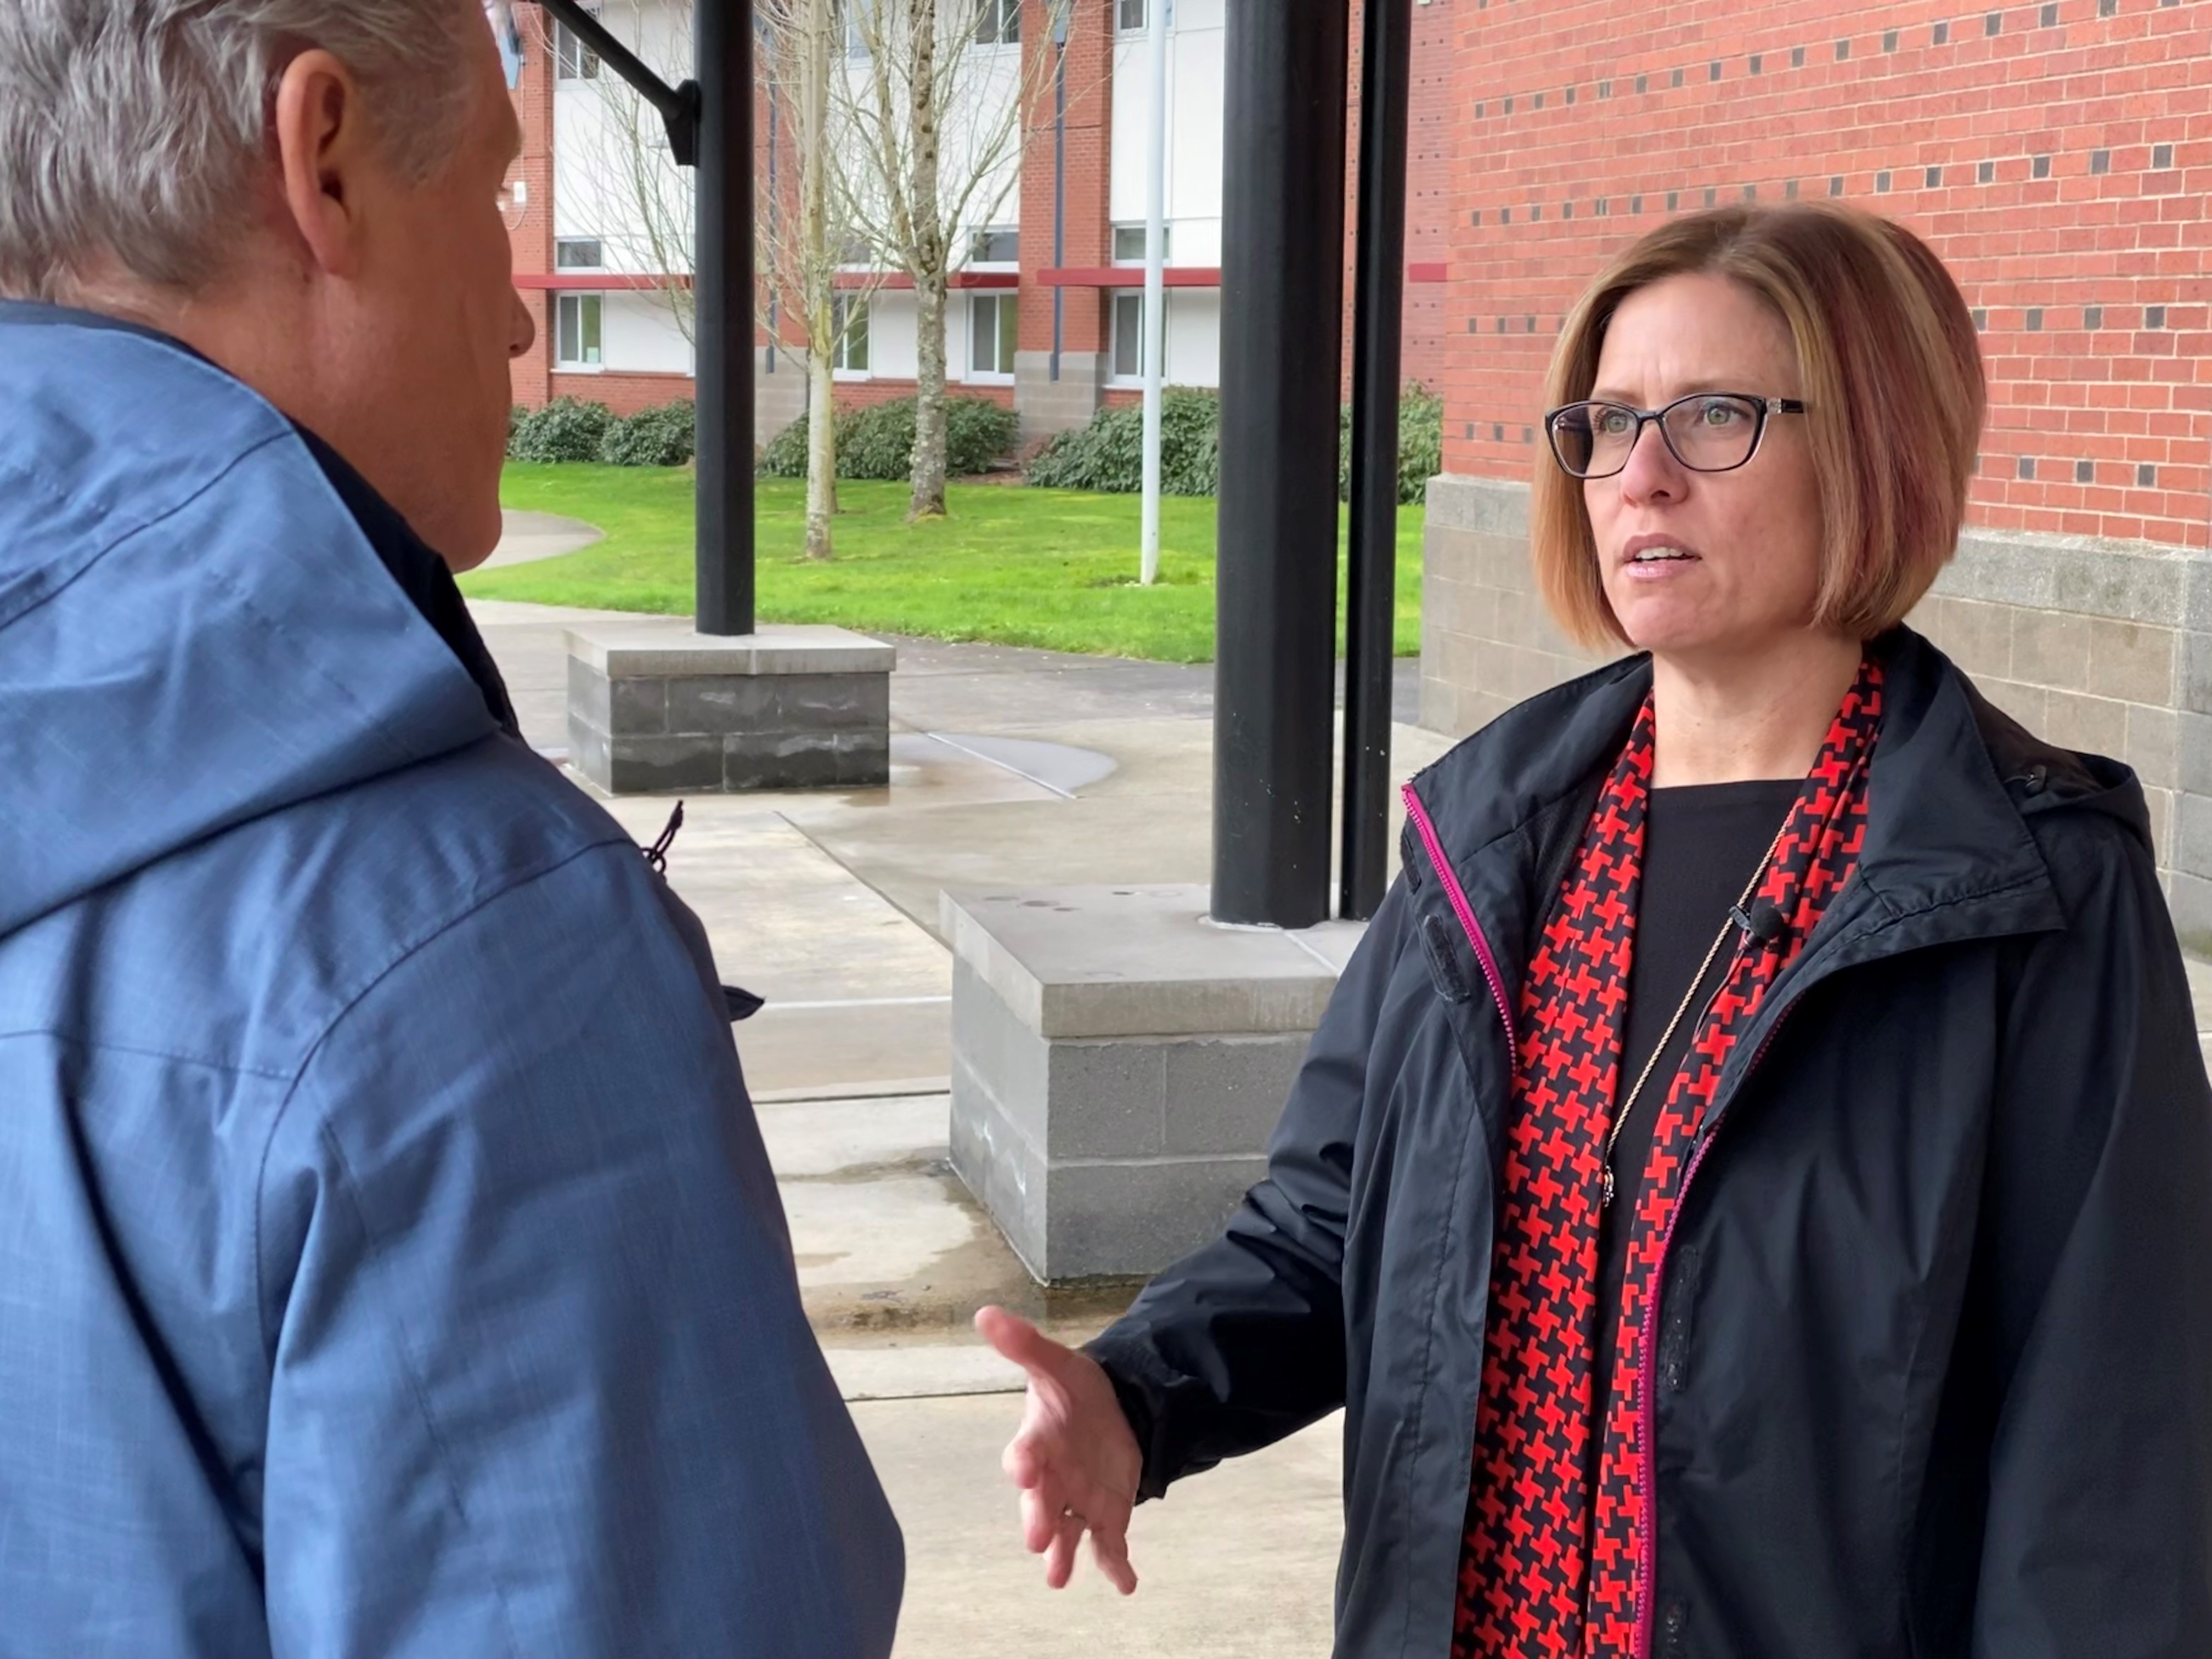 Camas High School Principal Liza Sejkora speaks to KATU reporter Bob Heye on Tuesday, Feb. 4, 2020 after she apologized for a Facebook post she made after basketball star Kobe Bryant was killed in a helicopter crash last month. (Photo: Ric Peavyhouse/KATU News)